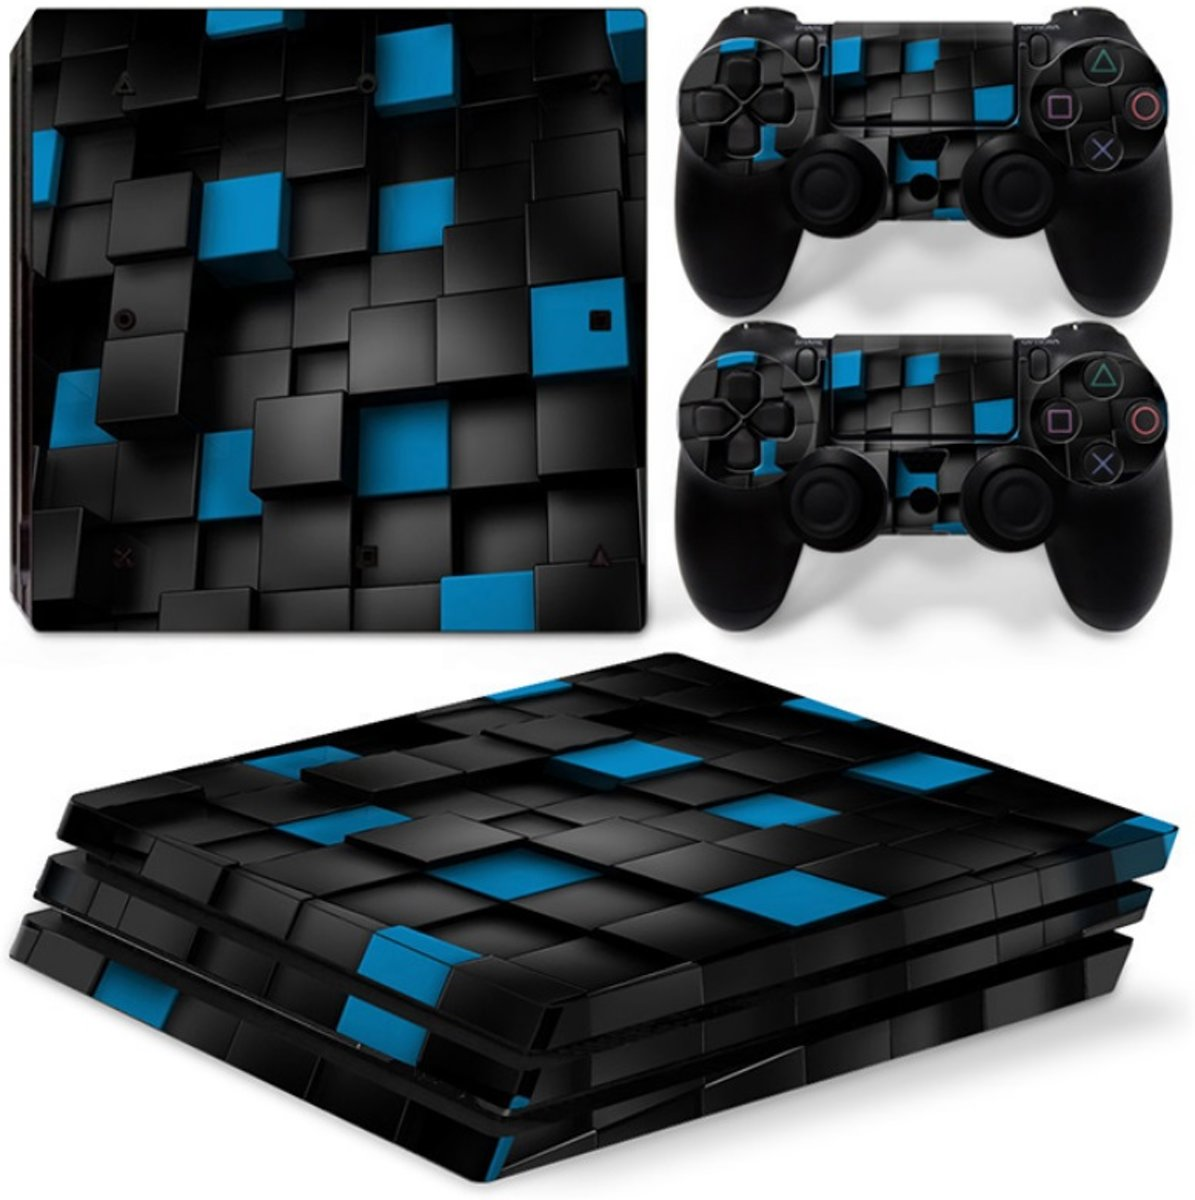 Playstation 4 Pro Sticker | Playstation 4 Pro Console Skin | Blue Cubes | Playstation 4 Pro Blauwe Vierkantjes Skin Sticker | Console Skin + 2 Controller Skins